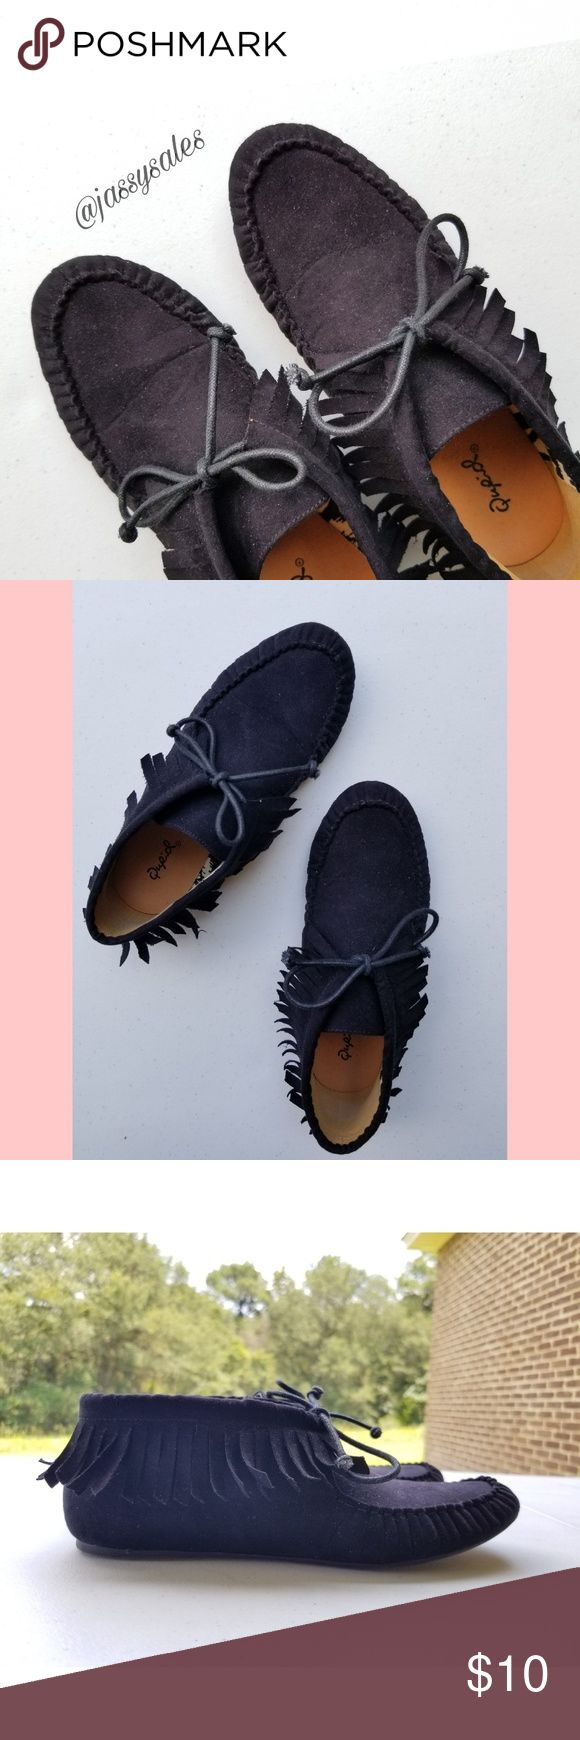 Charlotte Russe Qupid Black Moccasins 》 Size: 7.5 WOMEN'S  》 Condition: These cute little moccasins are almost new; they've only been worn 2 or 3 times! I purchased them from Charlotte Russe and they are of the Qupid brand.  ♡ Ask about bundling! I give special deals on bundles! (: Qupid Shoes Moccasins